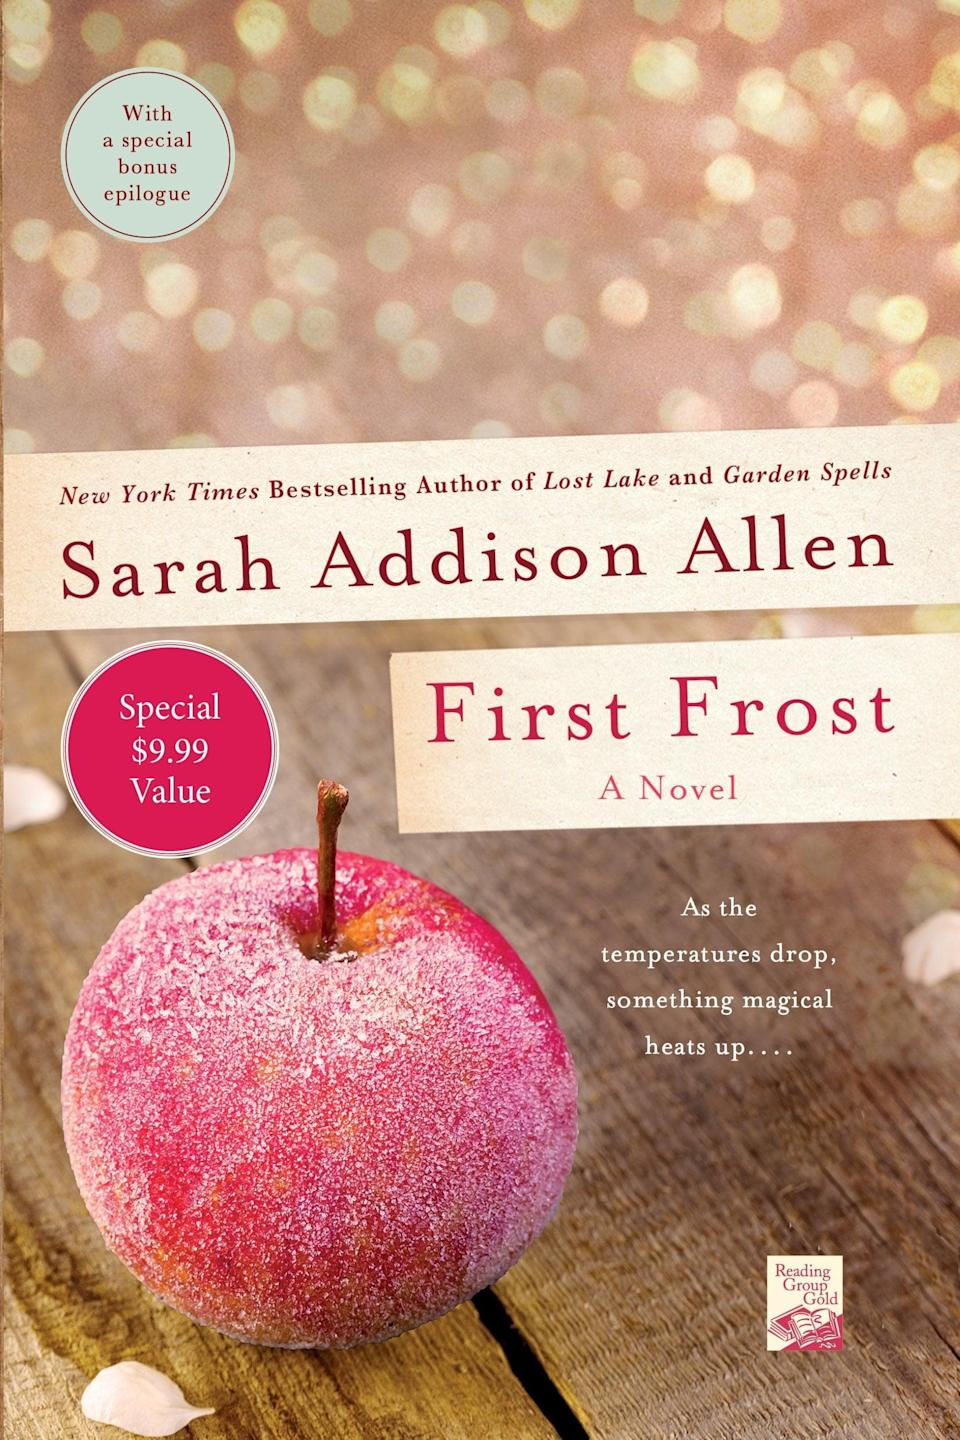 <p>There's a touch of magical realism that makes Sarah Addison Allen's <span><b>First Frost</b></span> extra special. The novel centers on the Waverley sisters and their small town life in Bascom, North Carolina. As Fall arrives in Bascom, the sisters meet a strange man who sets each of them on a new course.</p>